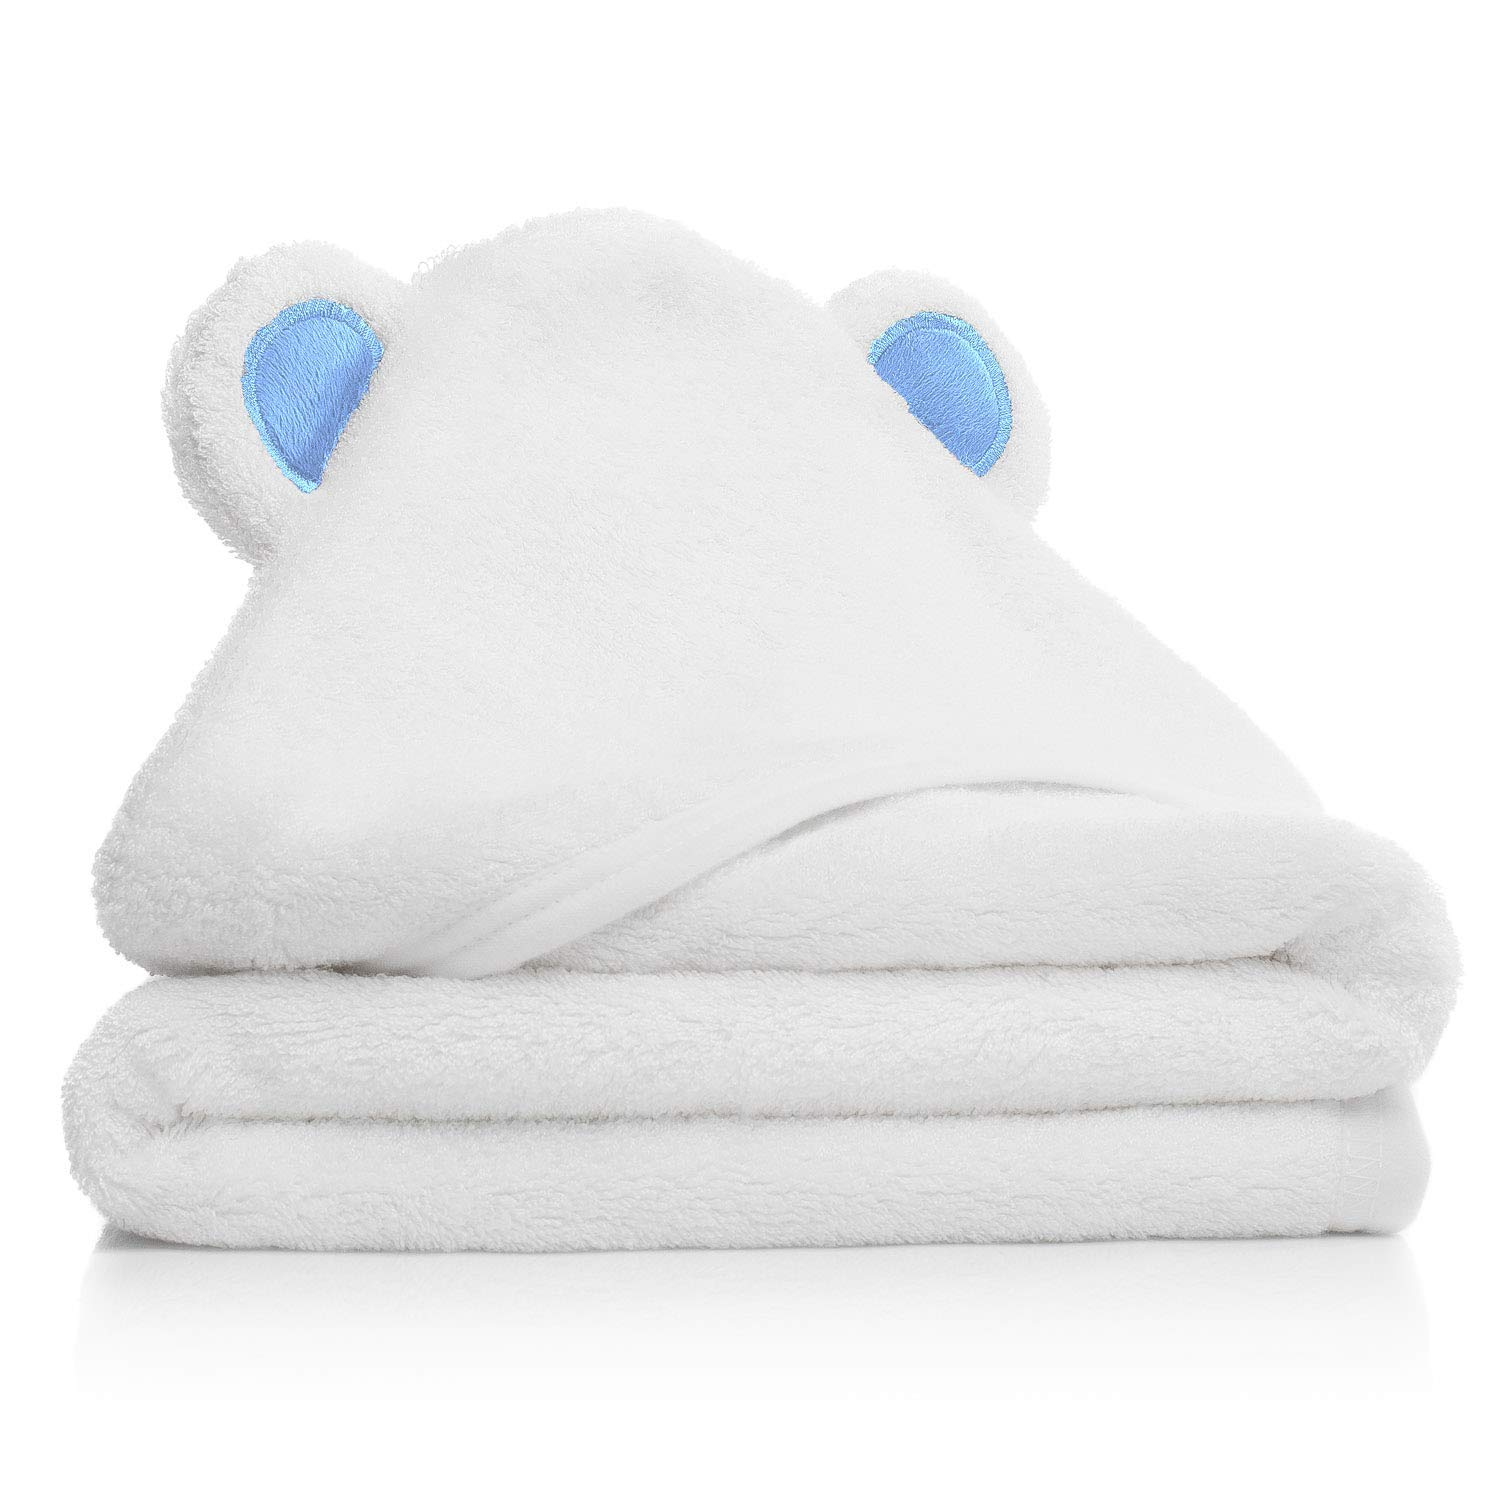 ZappyDoo Hooded Baby Towel Sets